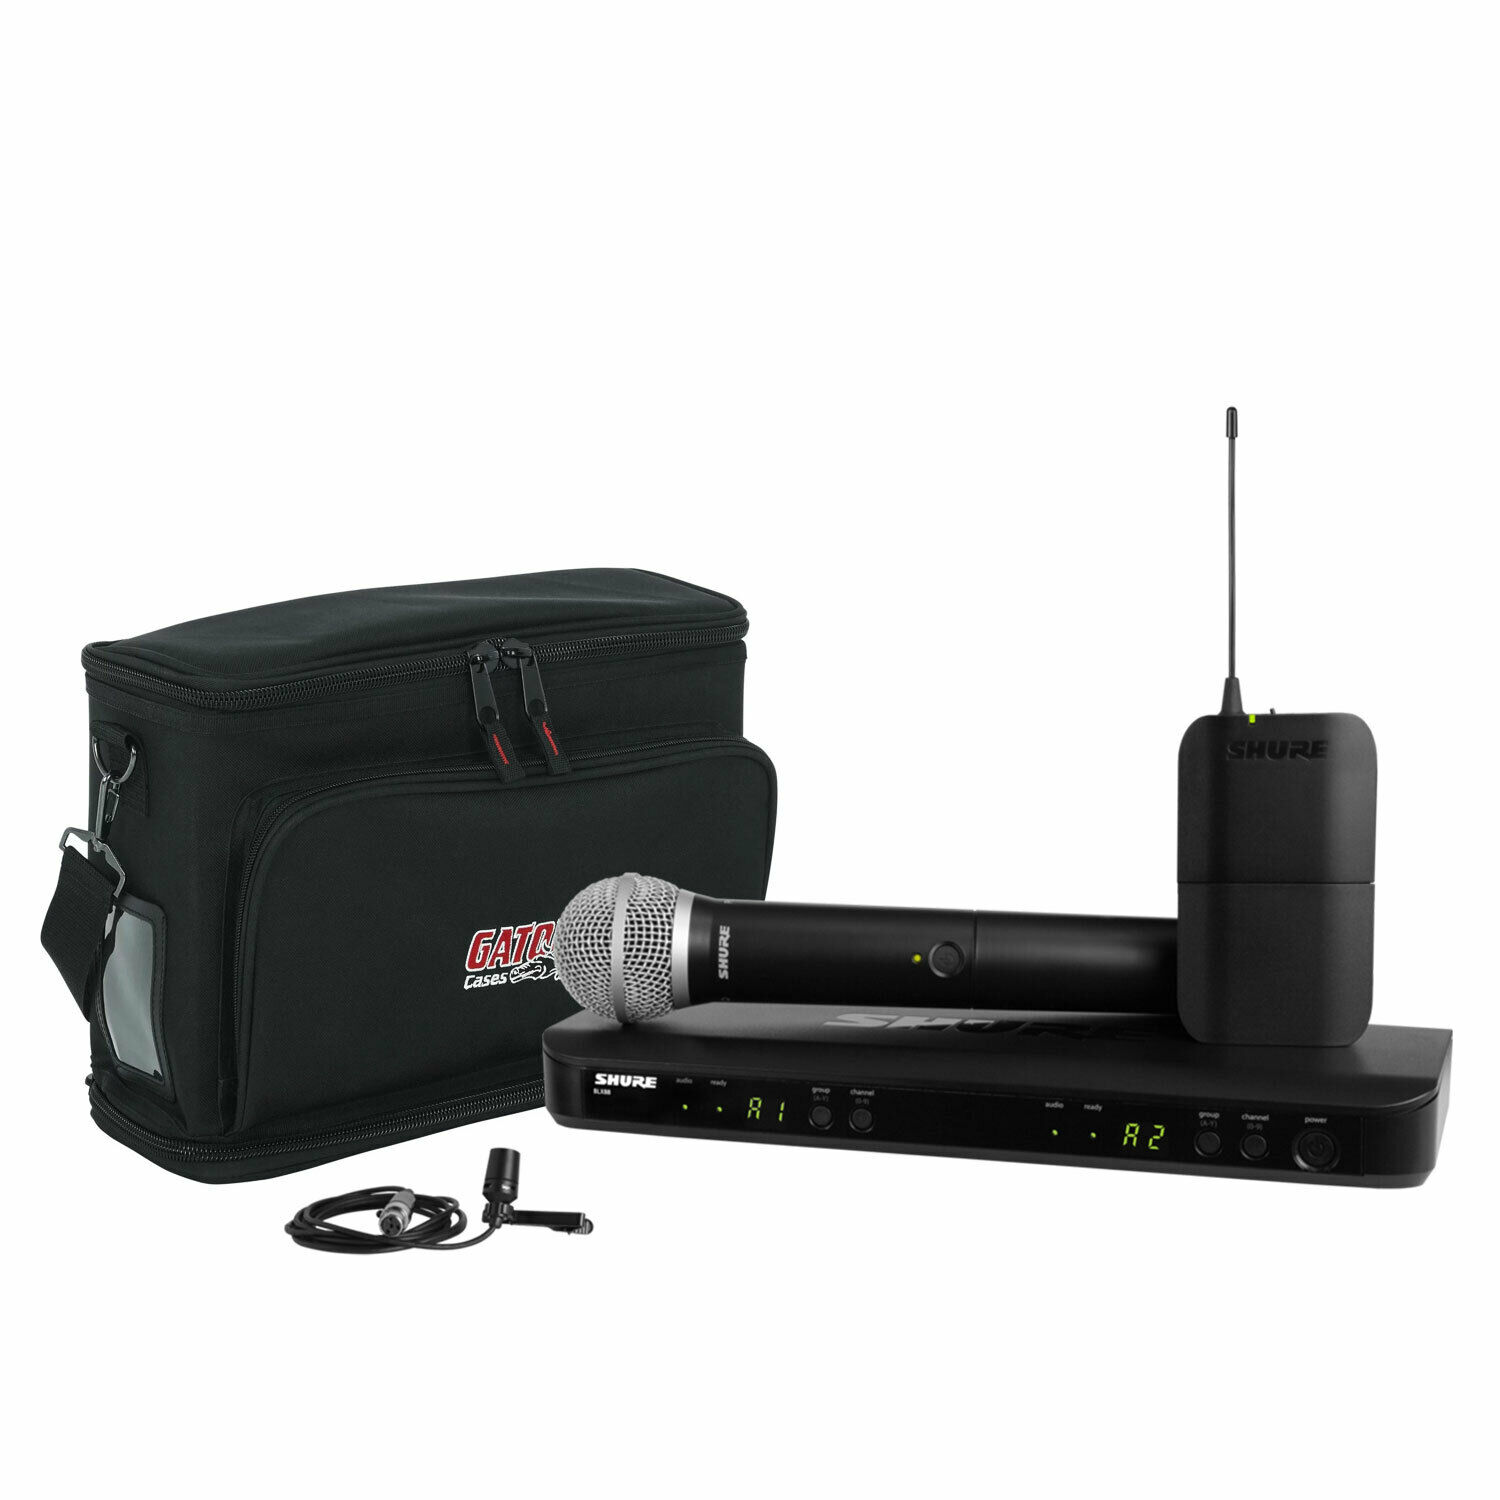 Shure BLX1288 CVL Dual-Channel Handheld & Wireless Mic System mit Carry Bag